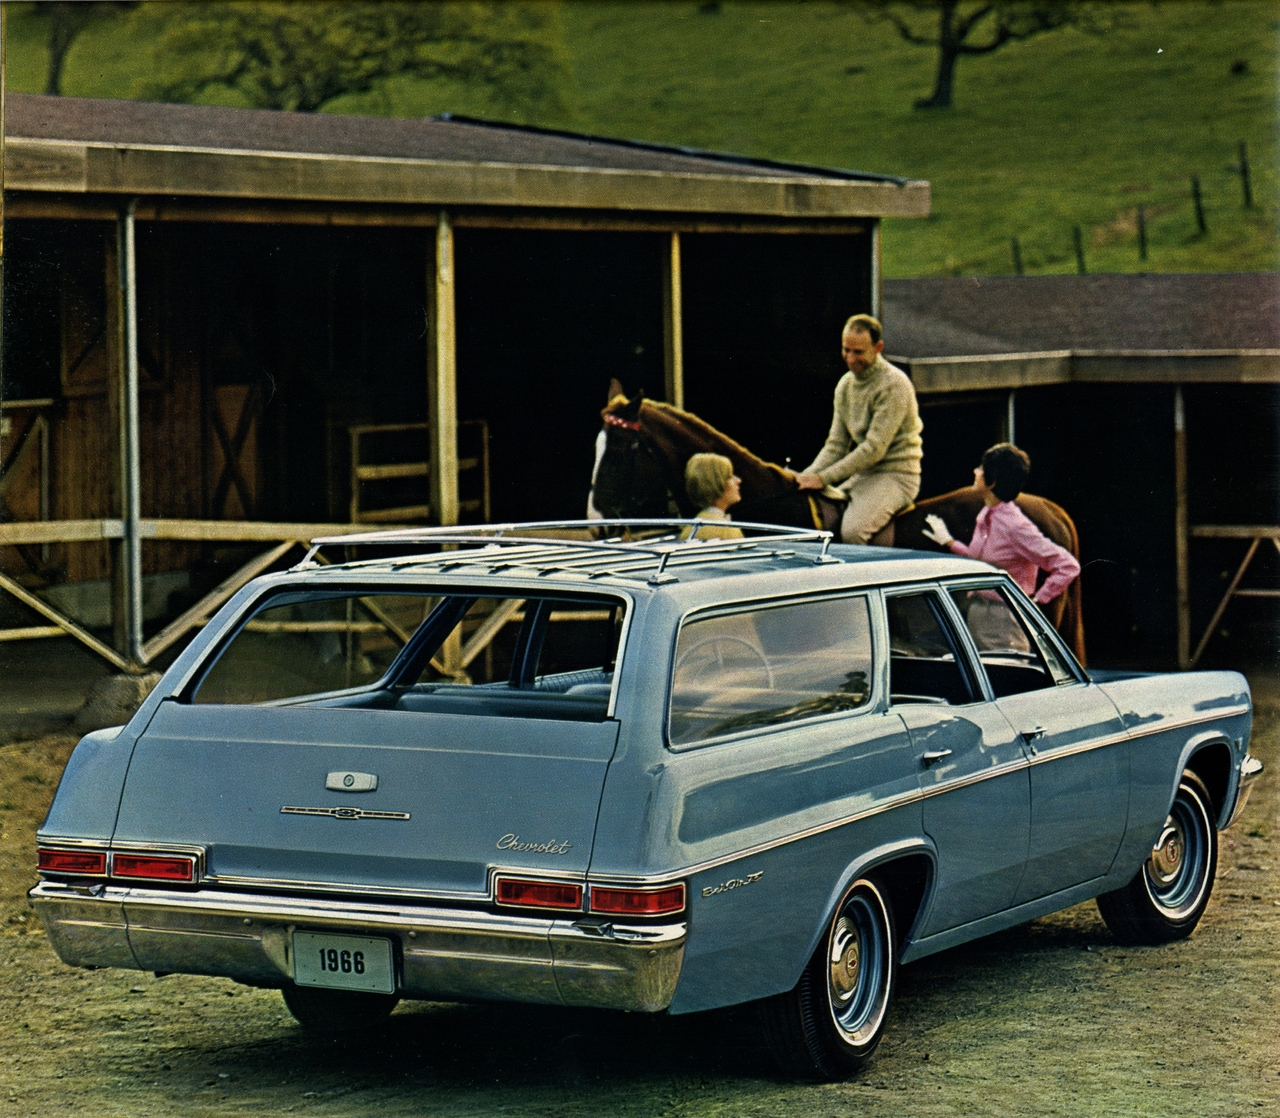 Chevrolet Belair Station Wagon The 1966 Bel Air Photo Picture